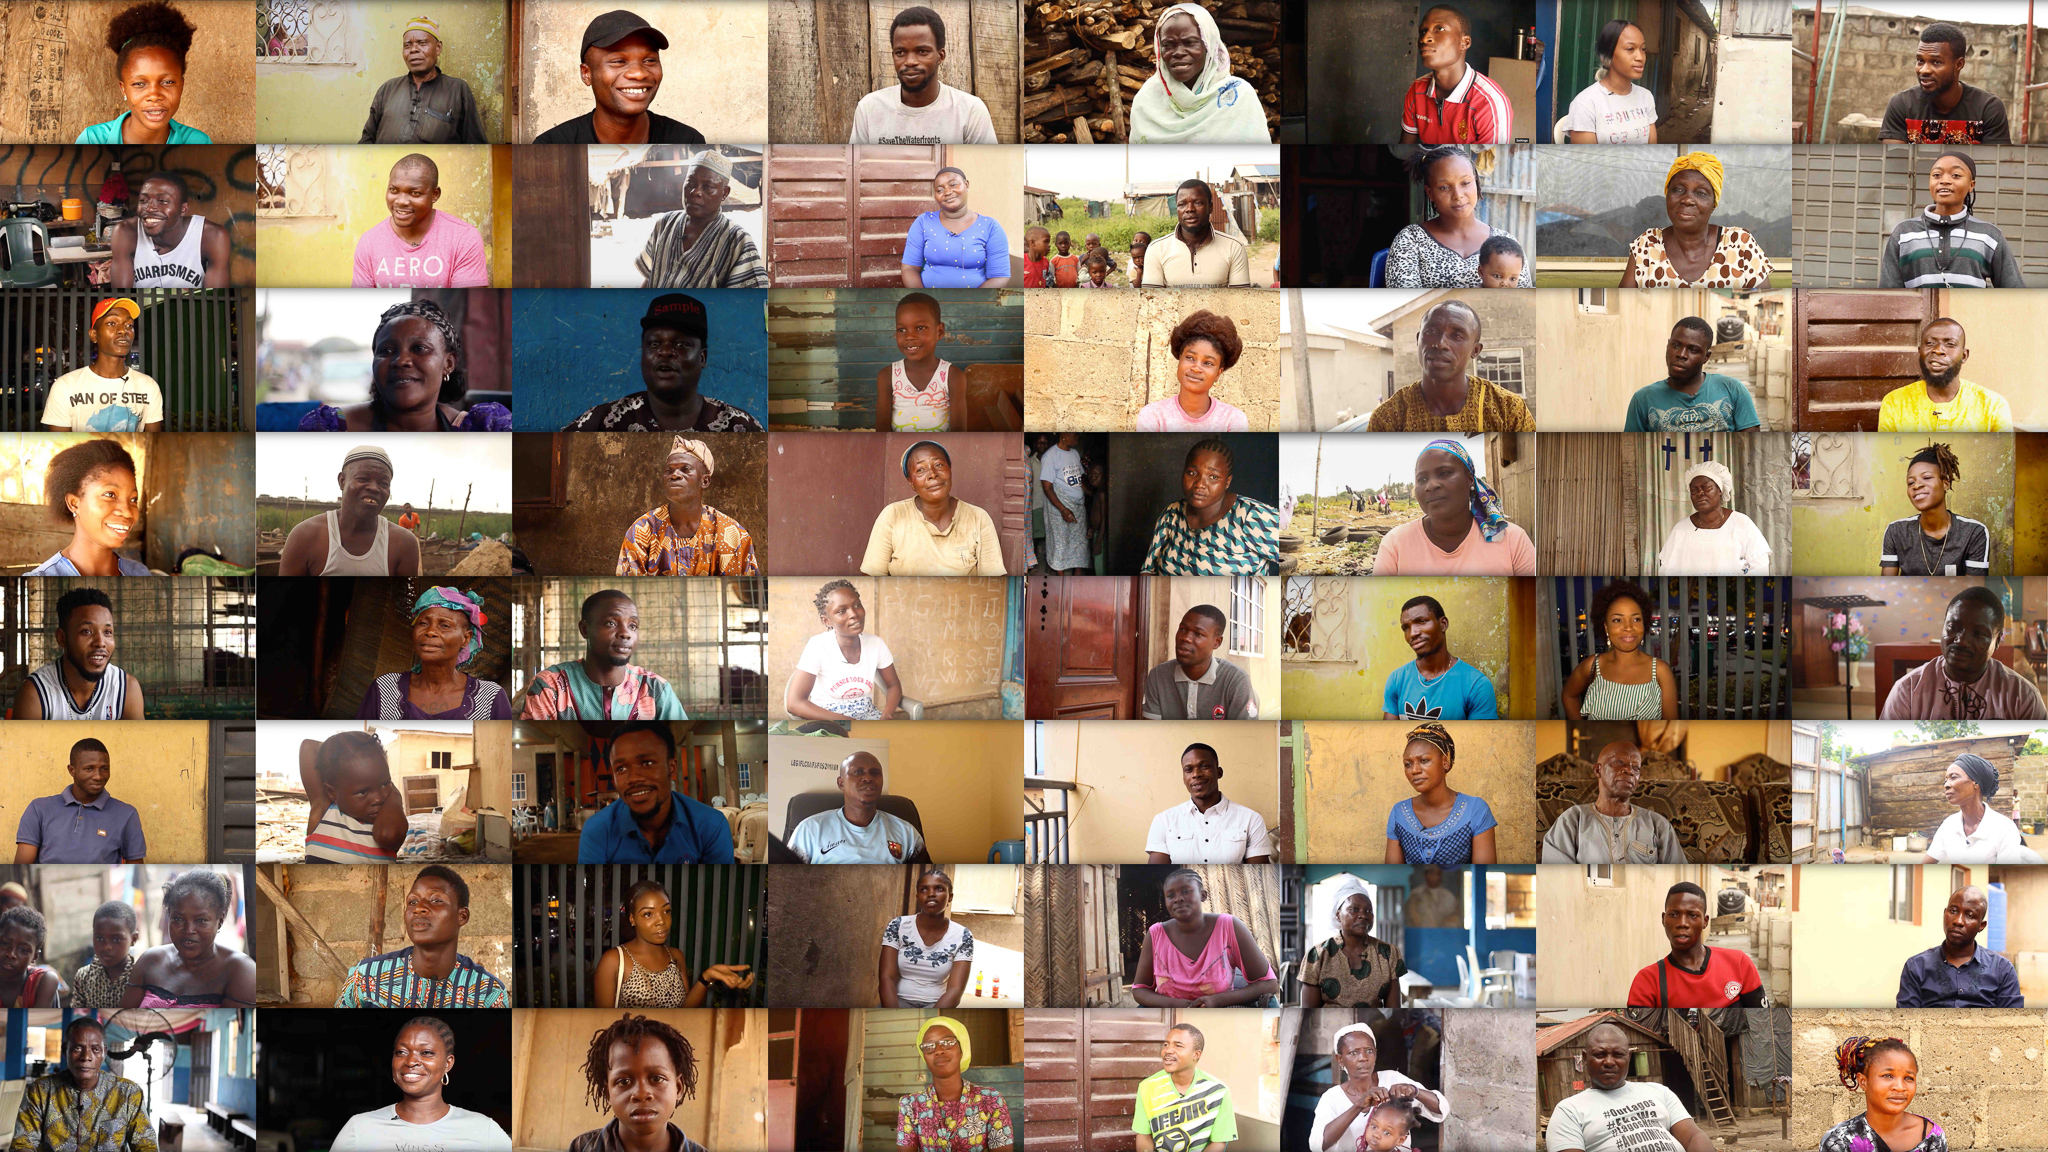 - The film's story is a mosaic of the environment from which it emerges. The plot is shaped by the lived experiences of community members of Lagos's informal settlements, and the central characters were constructed through building 72 interviews of community members into a cast of characters that reflect the faces and stories of Lagos's slum communities.